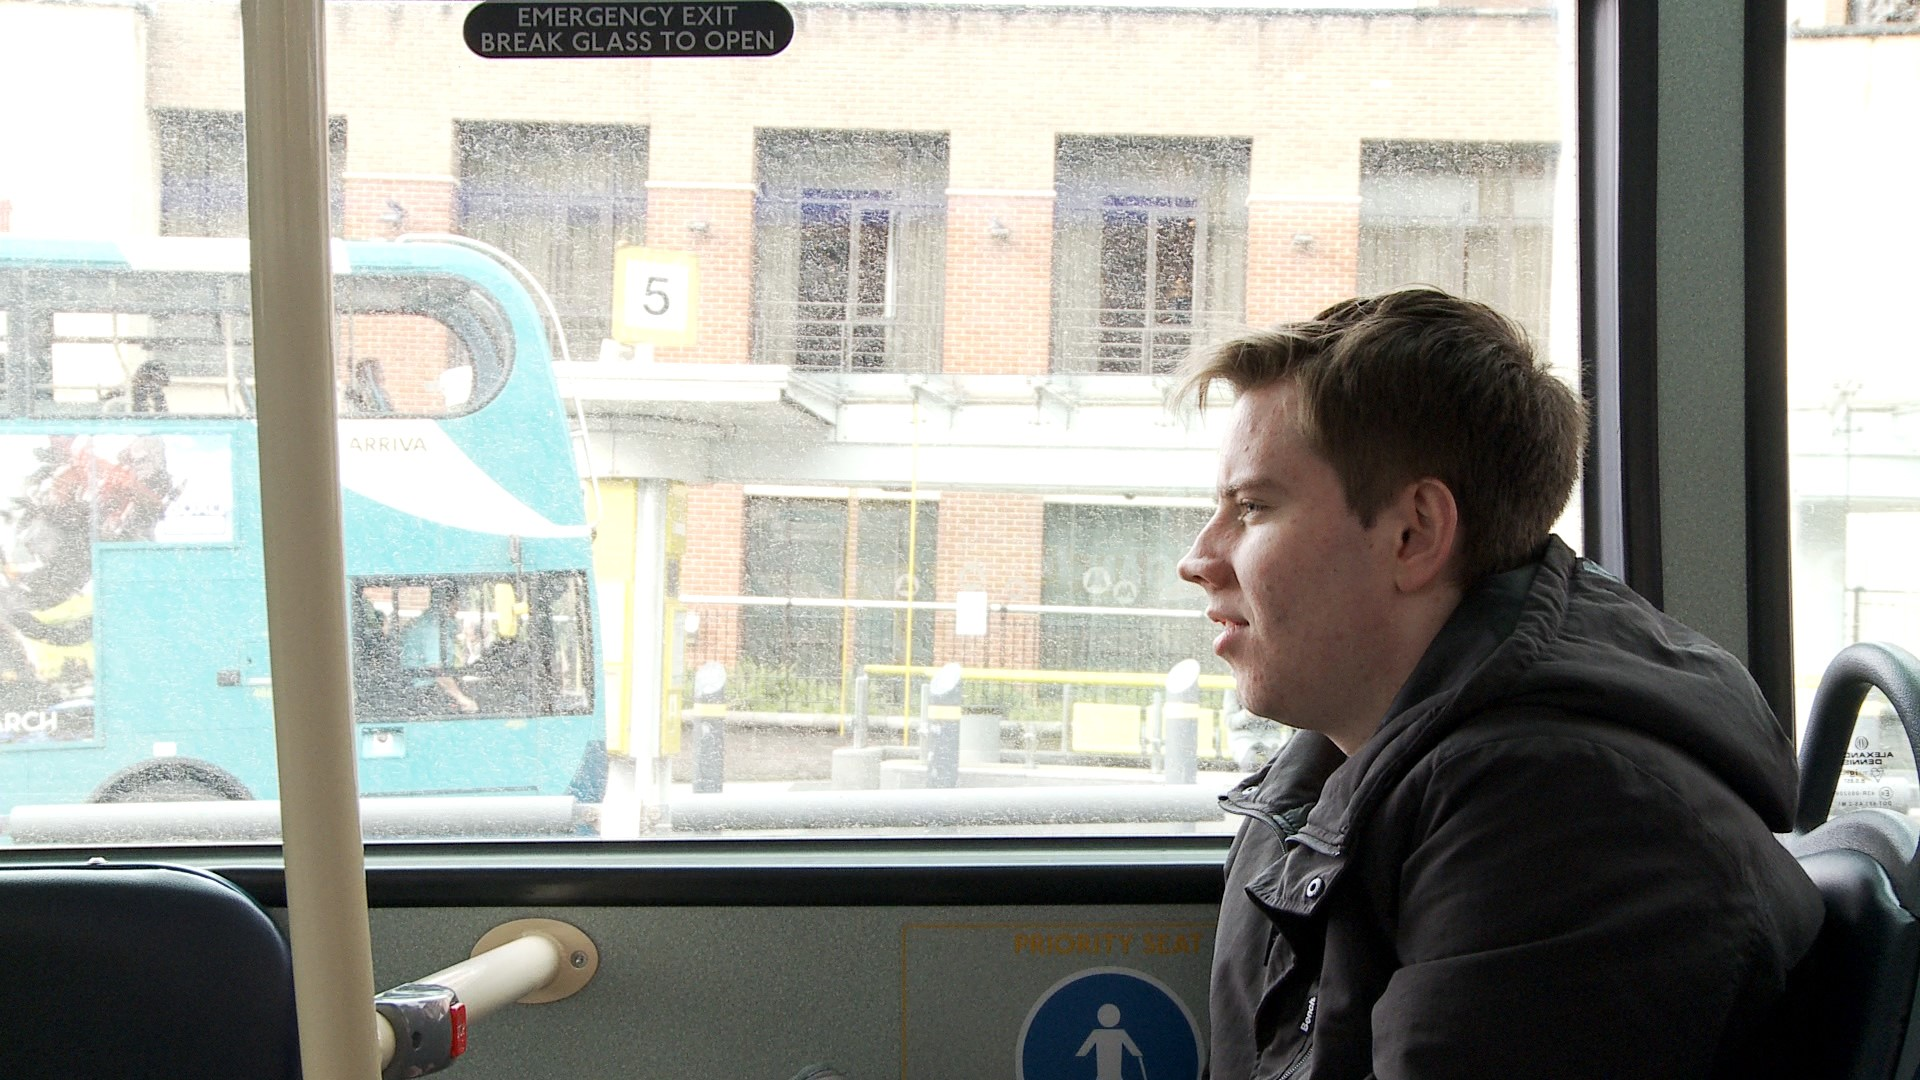 Michael sitting on a bus